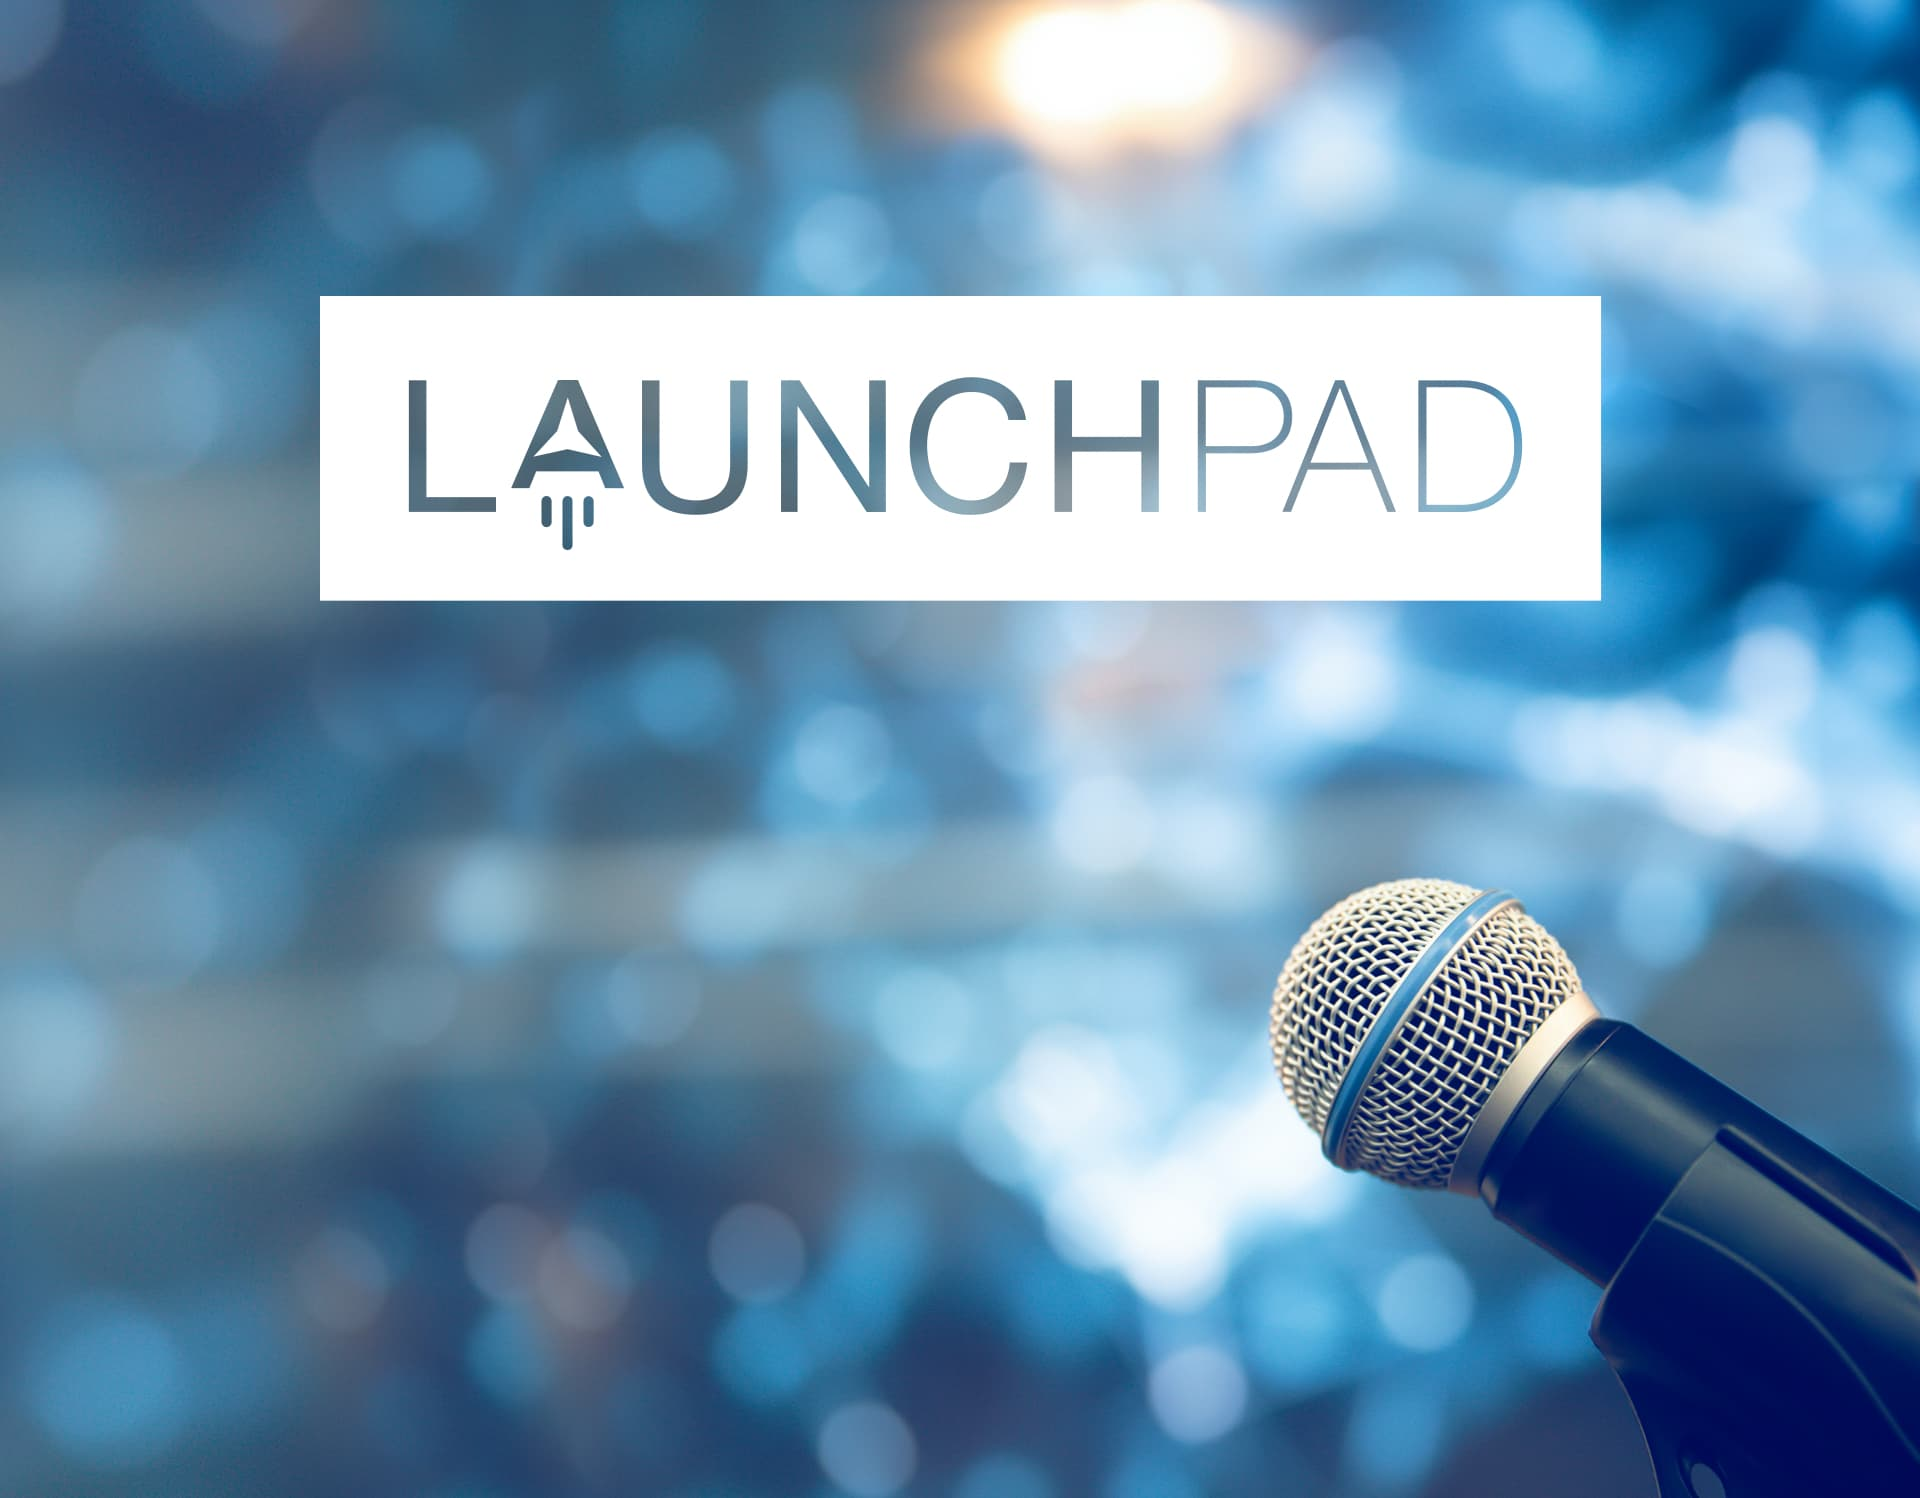 Launchpad logo in front of a crowd.